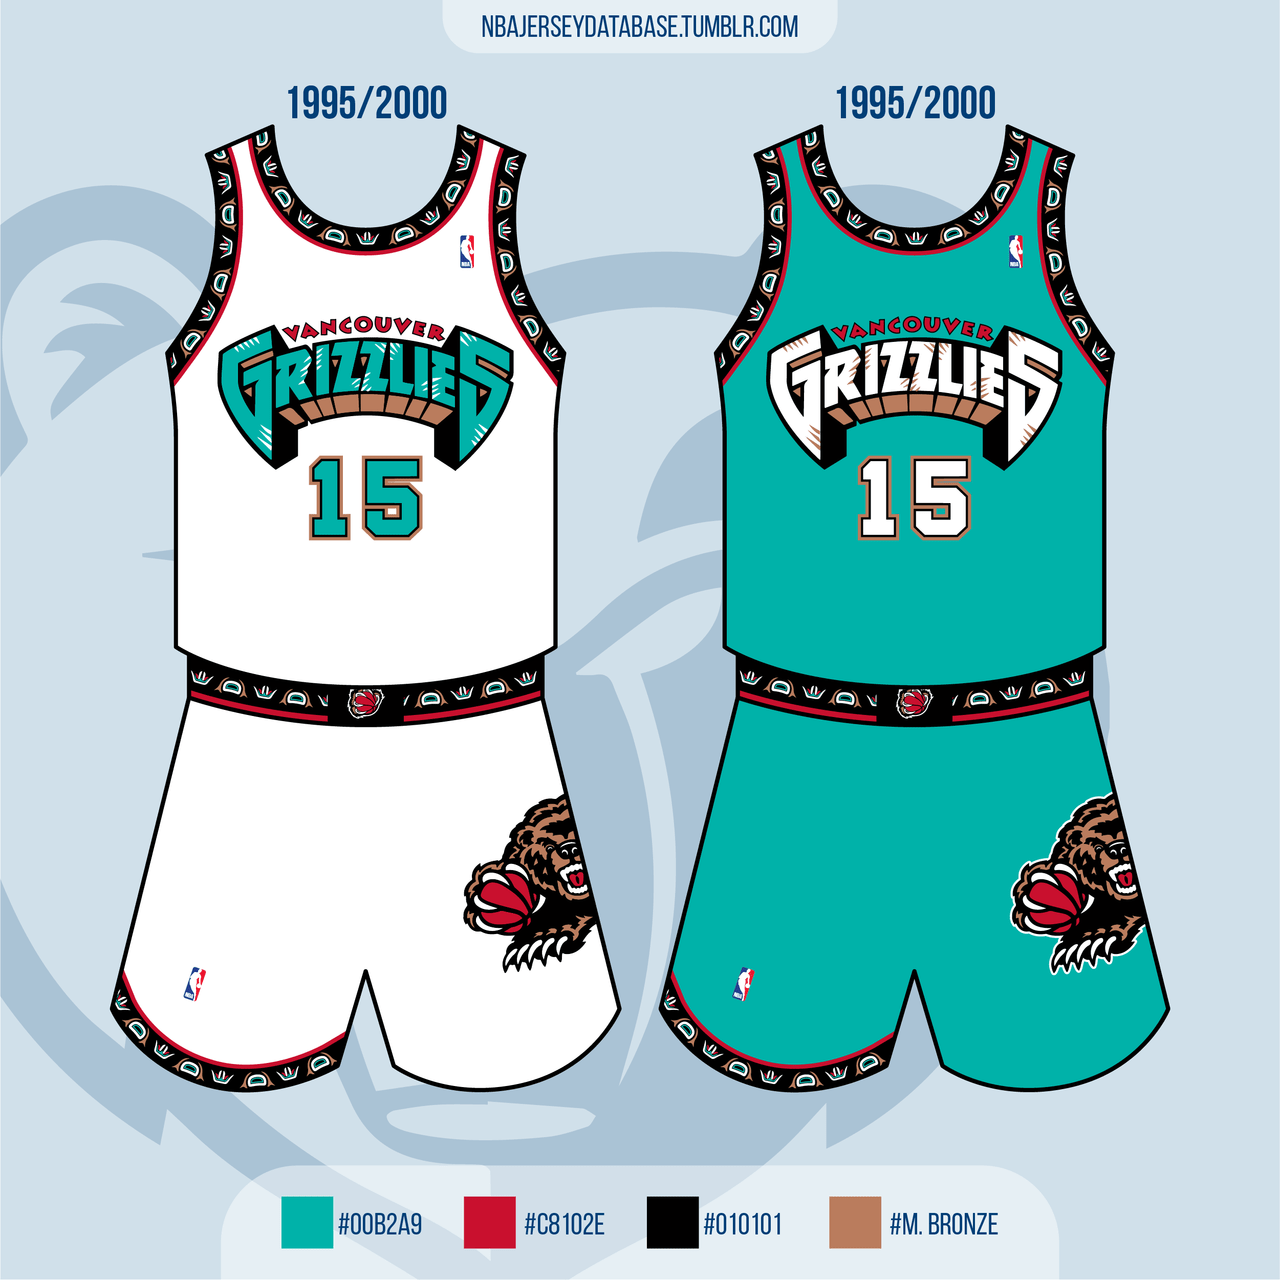 Vancouver Grizzlies 1995-2000 Record: 78-300 (21%)